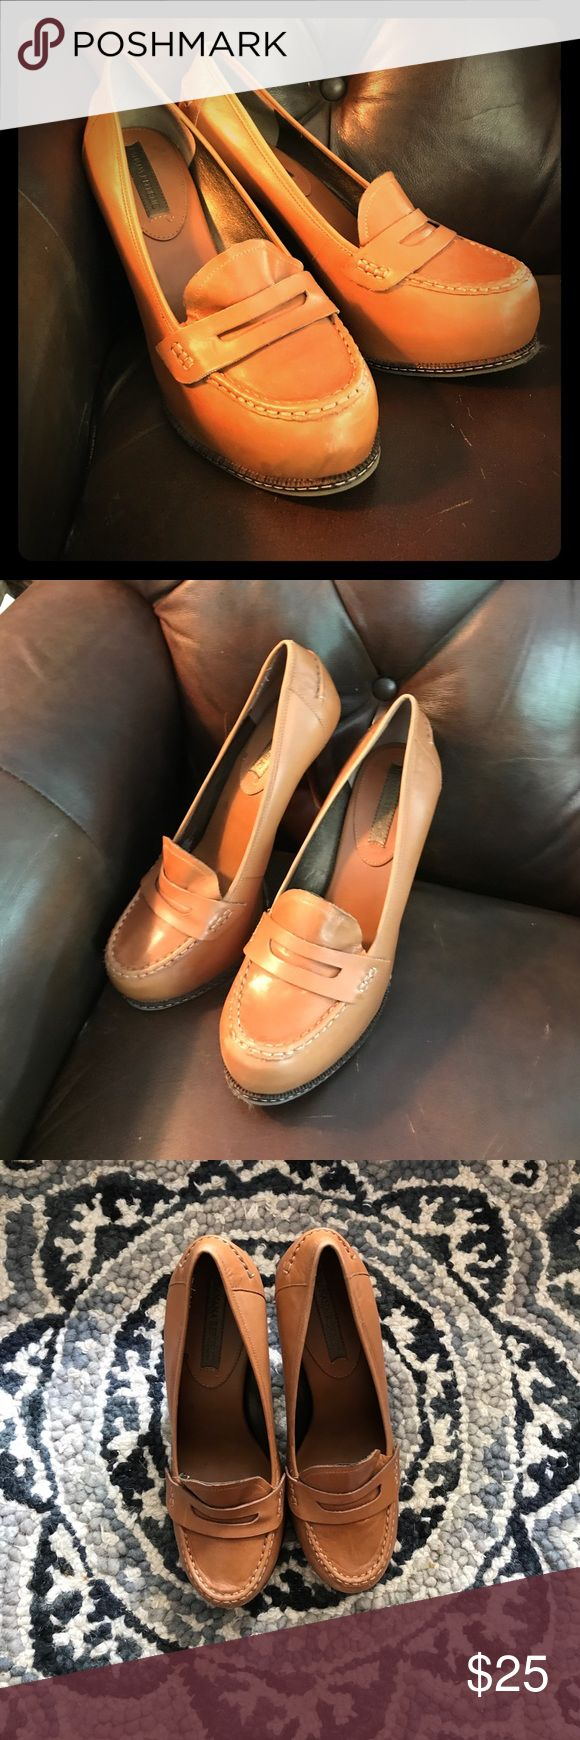 """Banana republic Leather heeled loafers Tan leather high heel loafers. High heels. At least 4"""" but there is a slight platform for comfort. Very clean. Barely worn. Banana Republic Shoes Heels"""